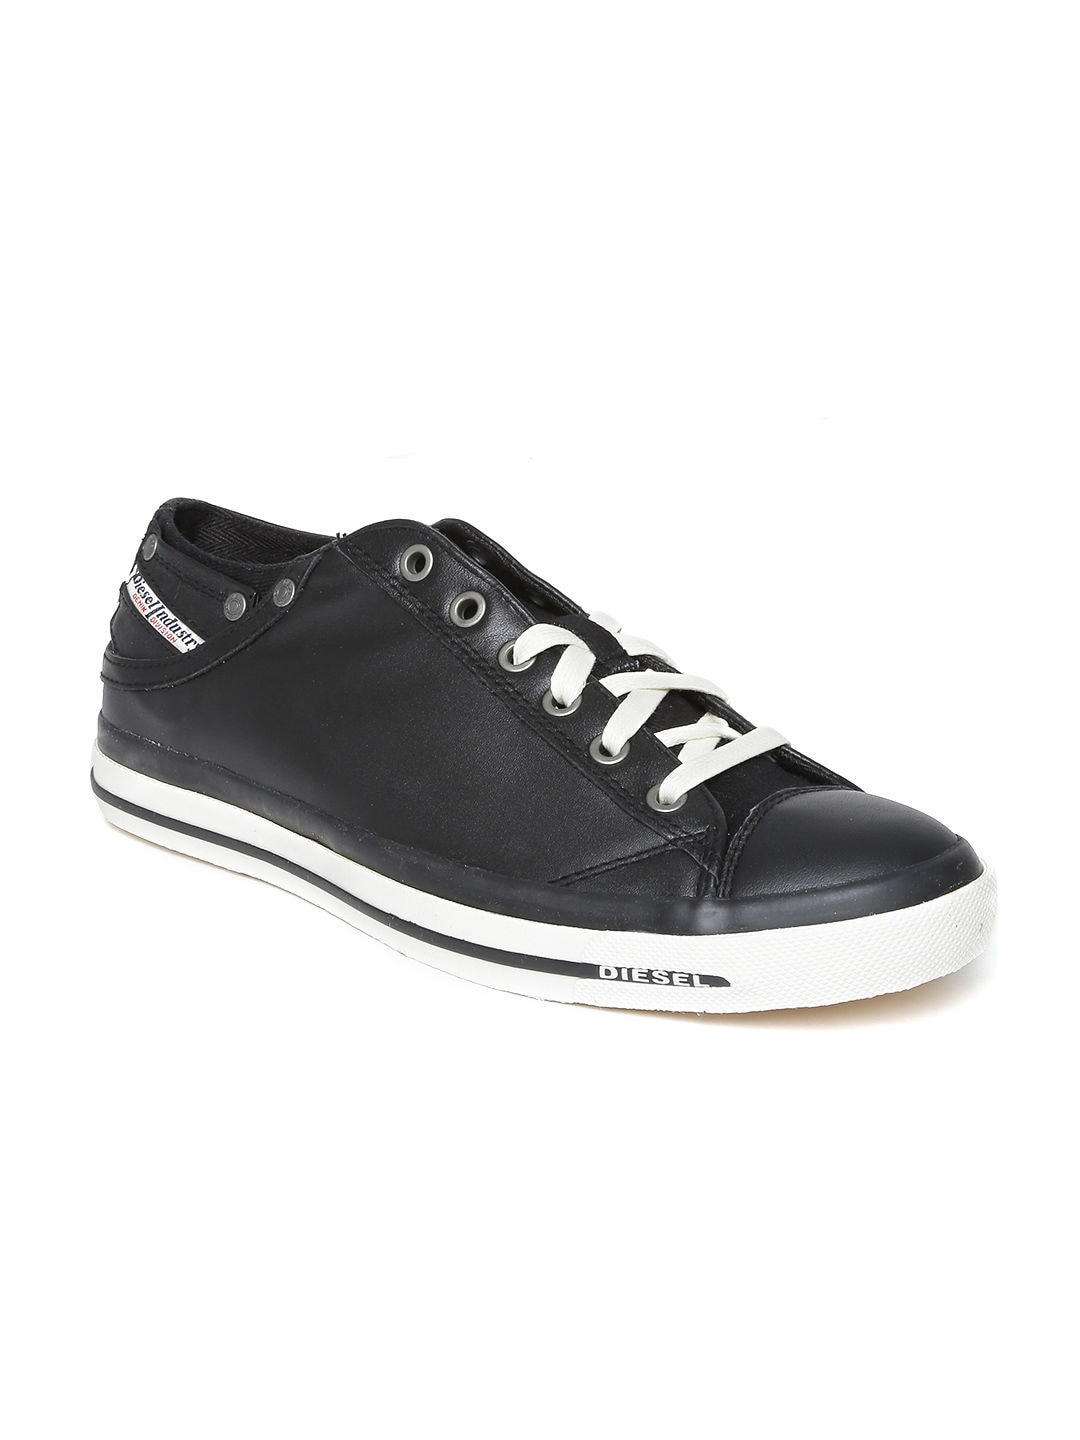 separation shoes 15905 51bf9 Black Shoes - Buy Black Shoes Online in India